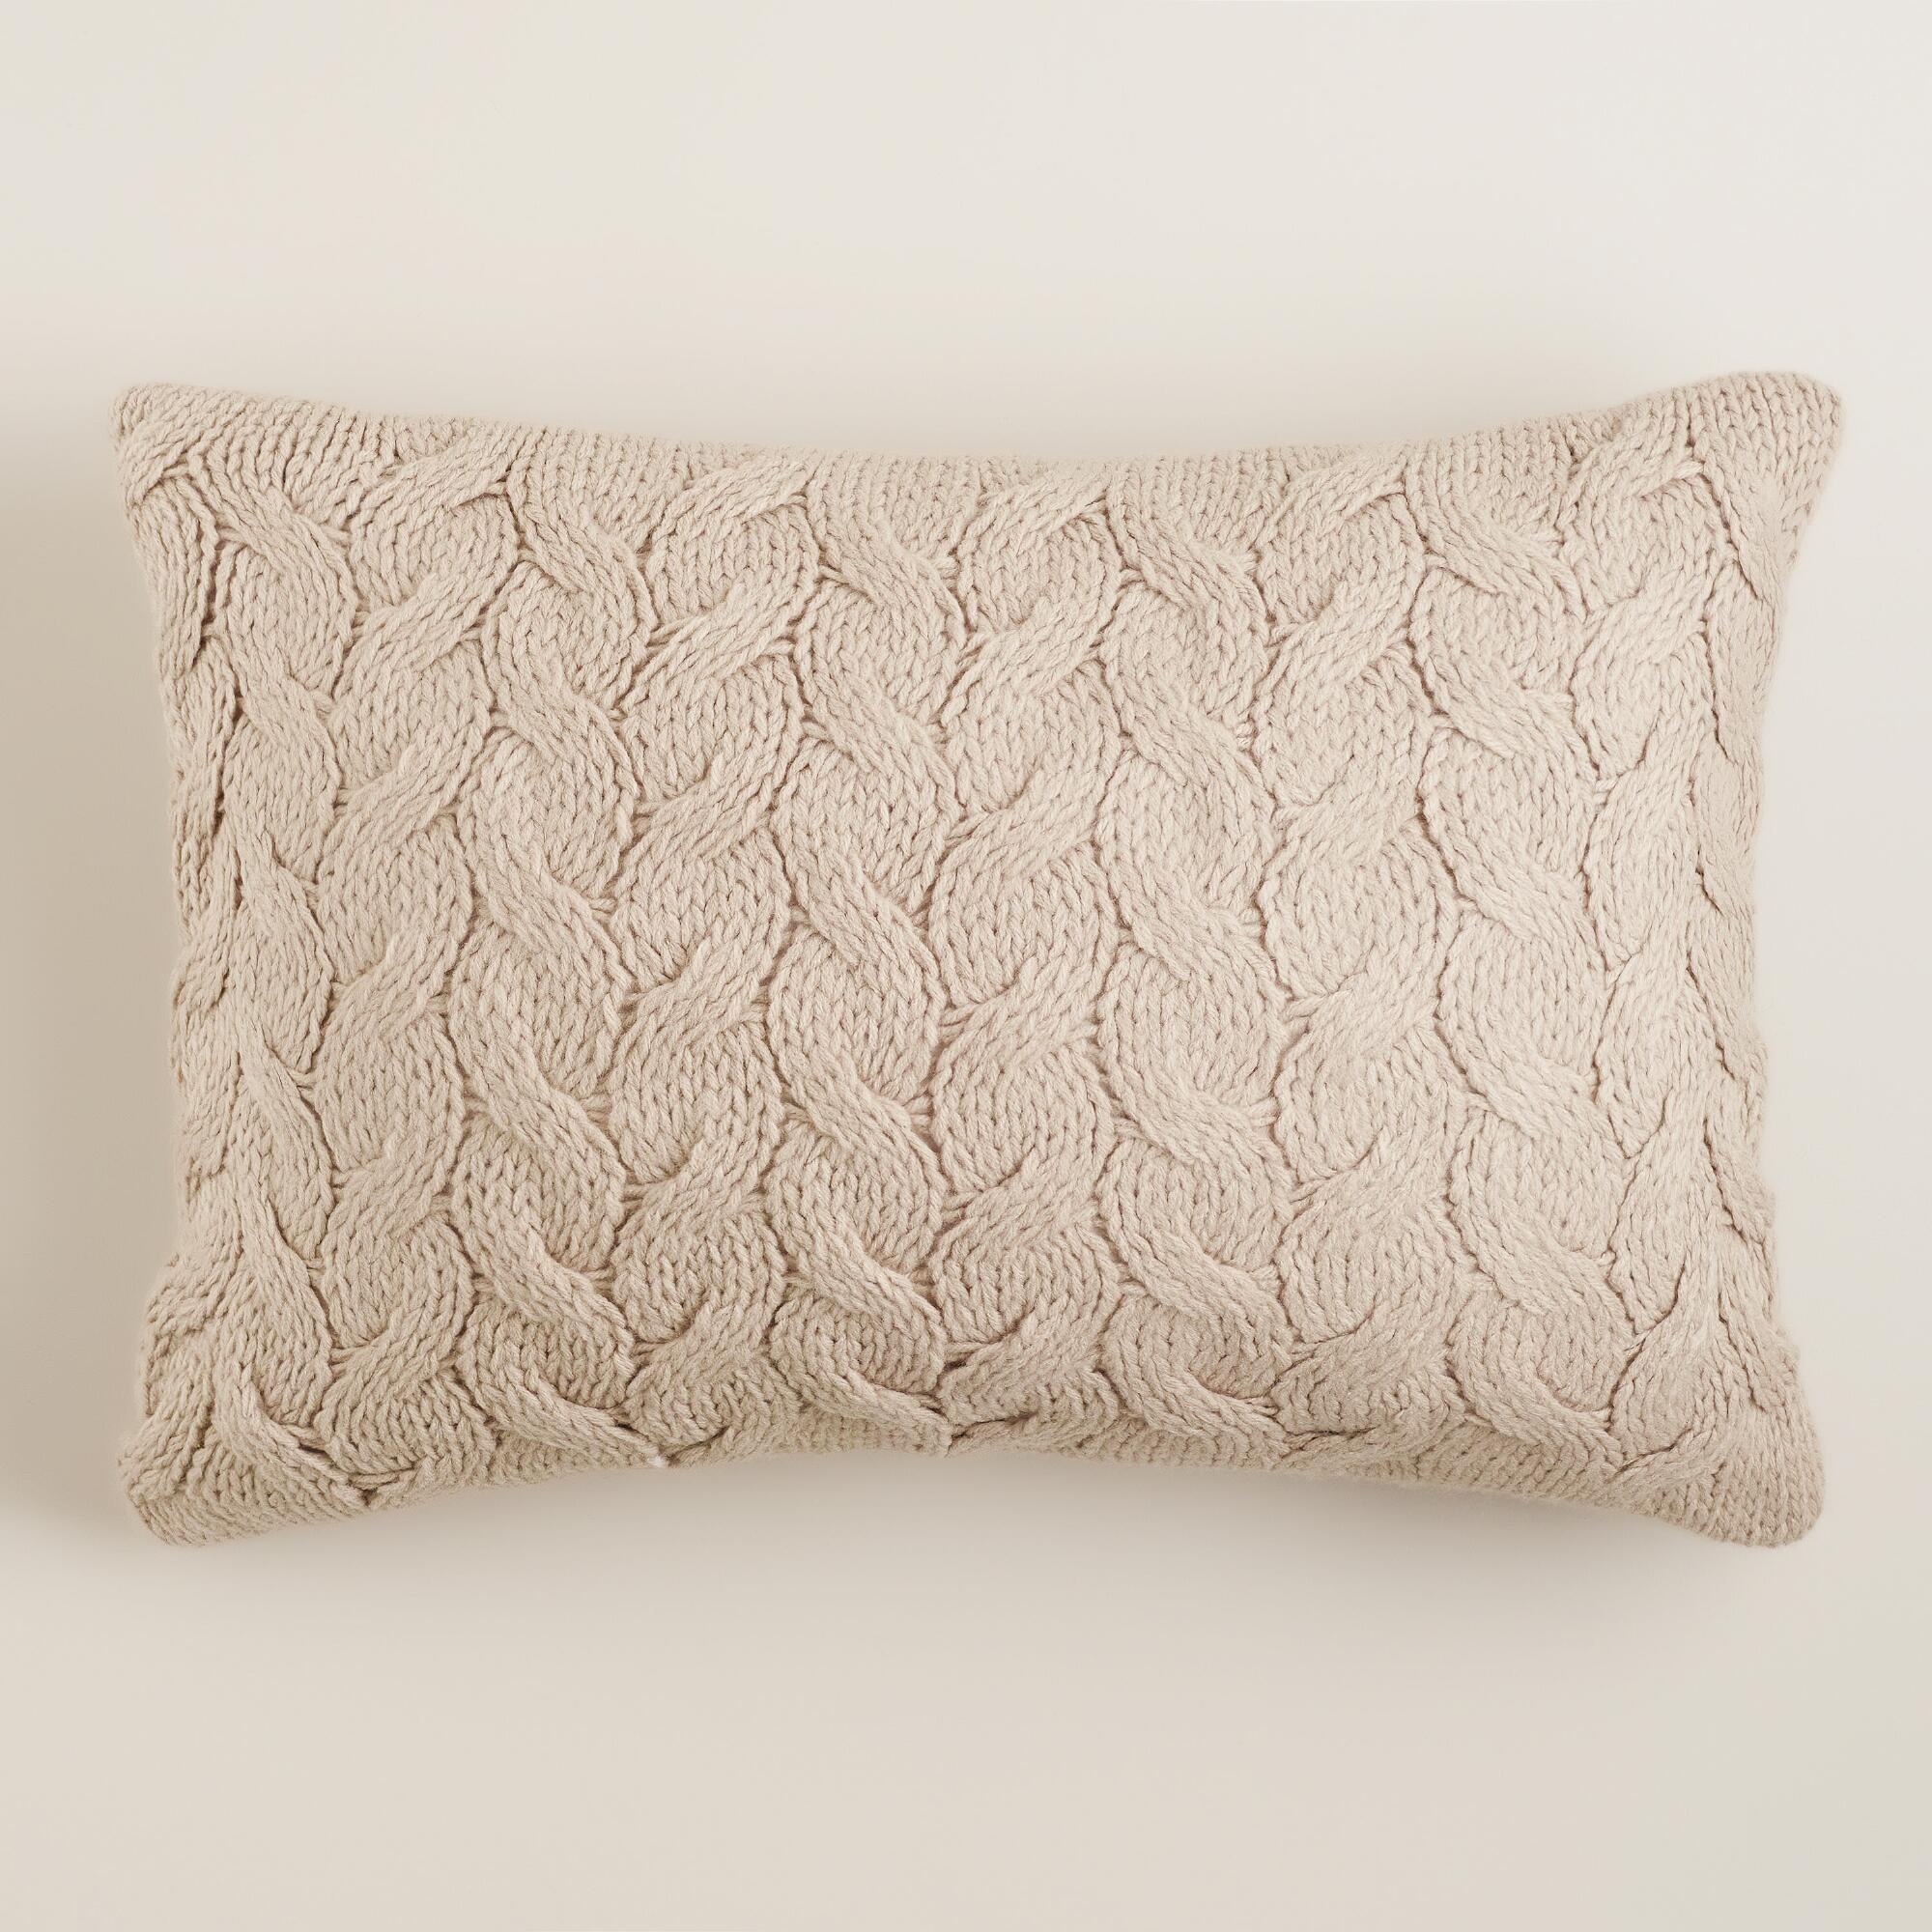 Knitting Pillows : Taupe hand knit lumbar pillow world market